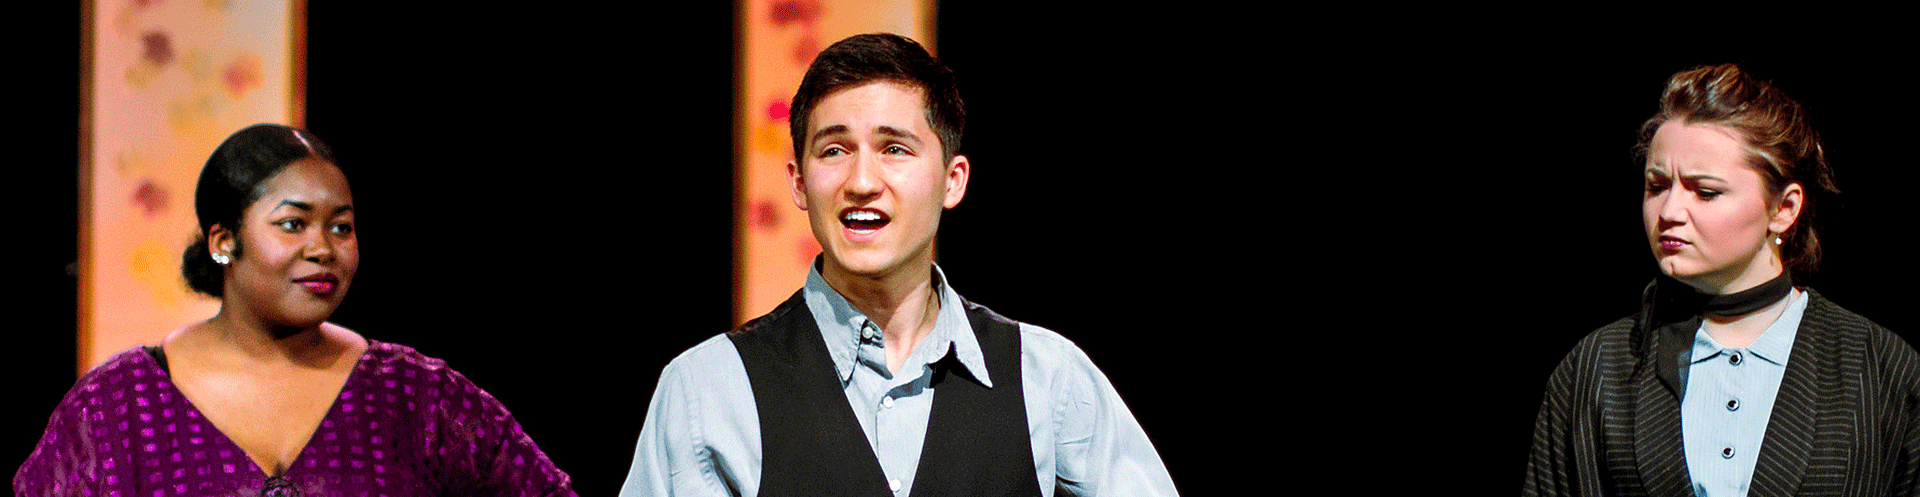 Music major Bryson Brozovsky embraces life with gusto